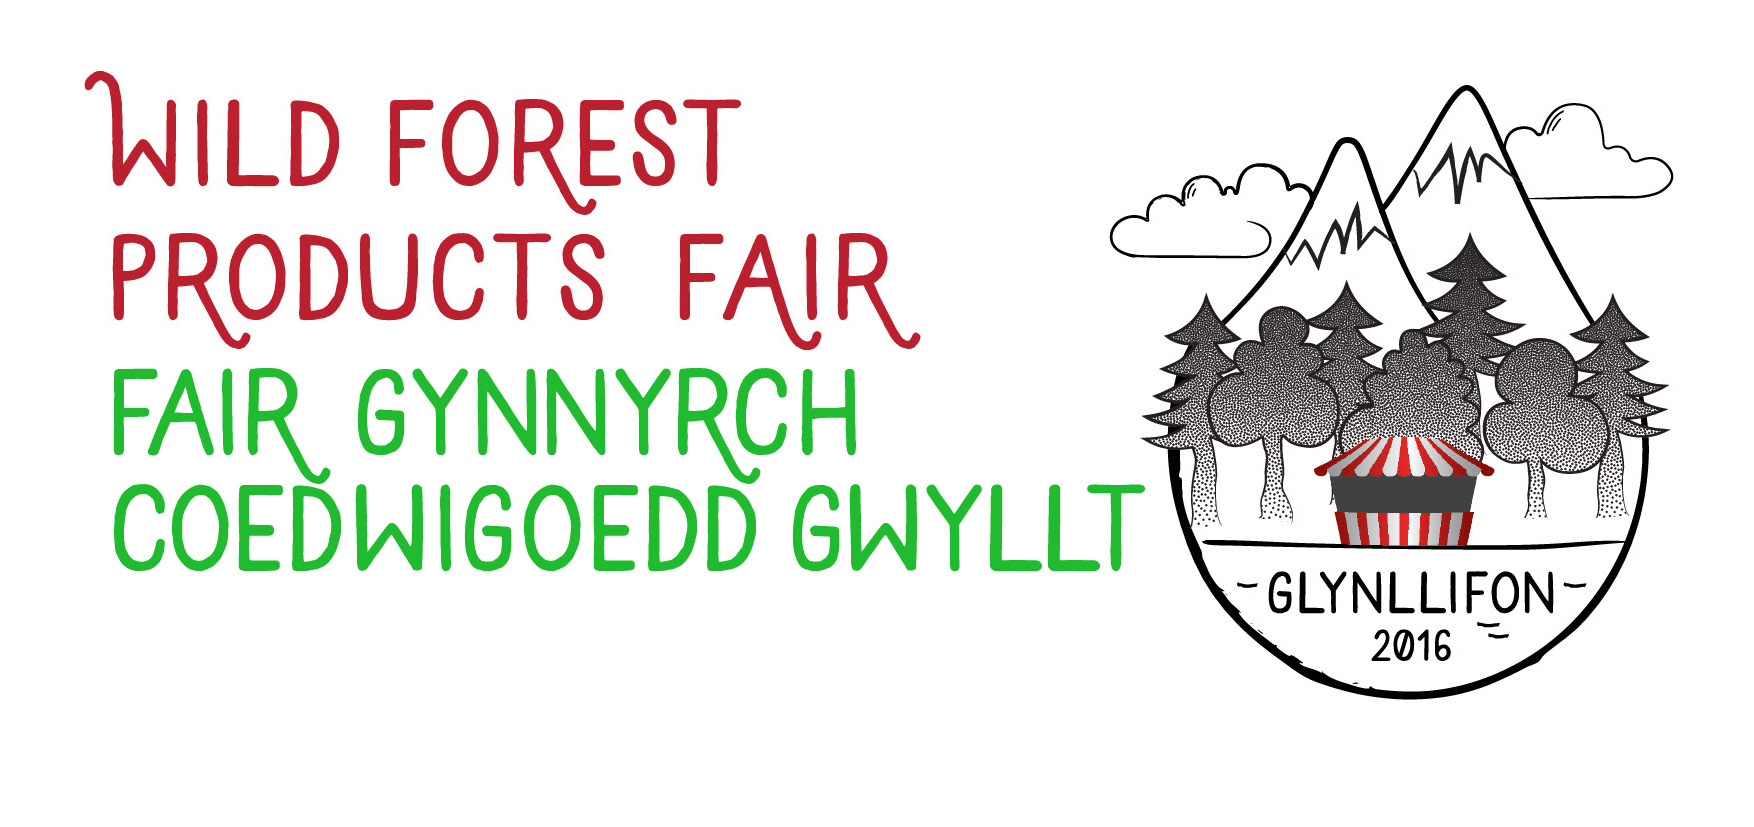 Wild Forest Products Fair